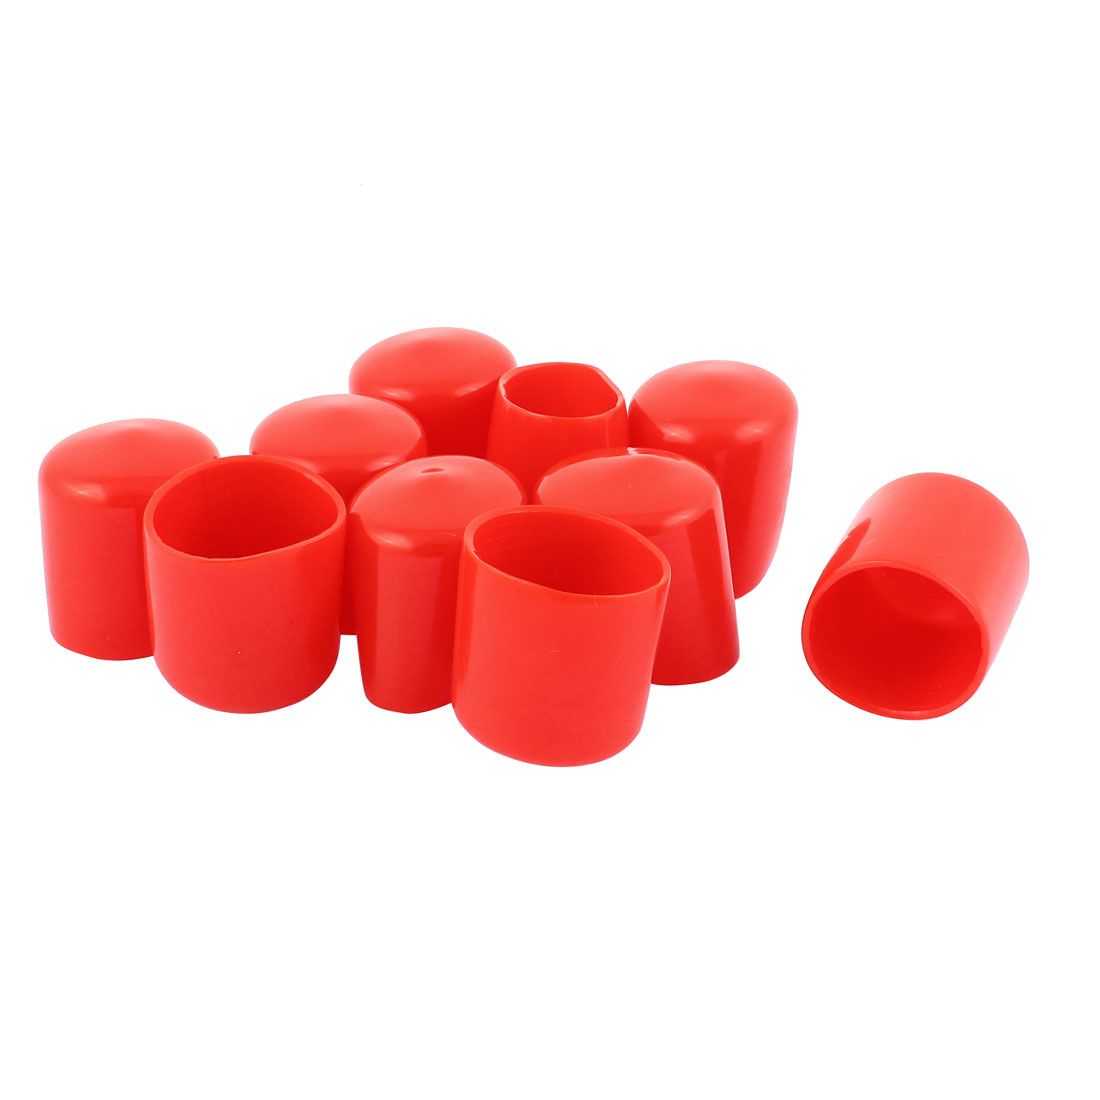 10pcs 34mm Inner Dia Vinyl End Cap Wire Cable Tube Cover Protector